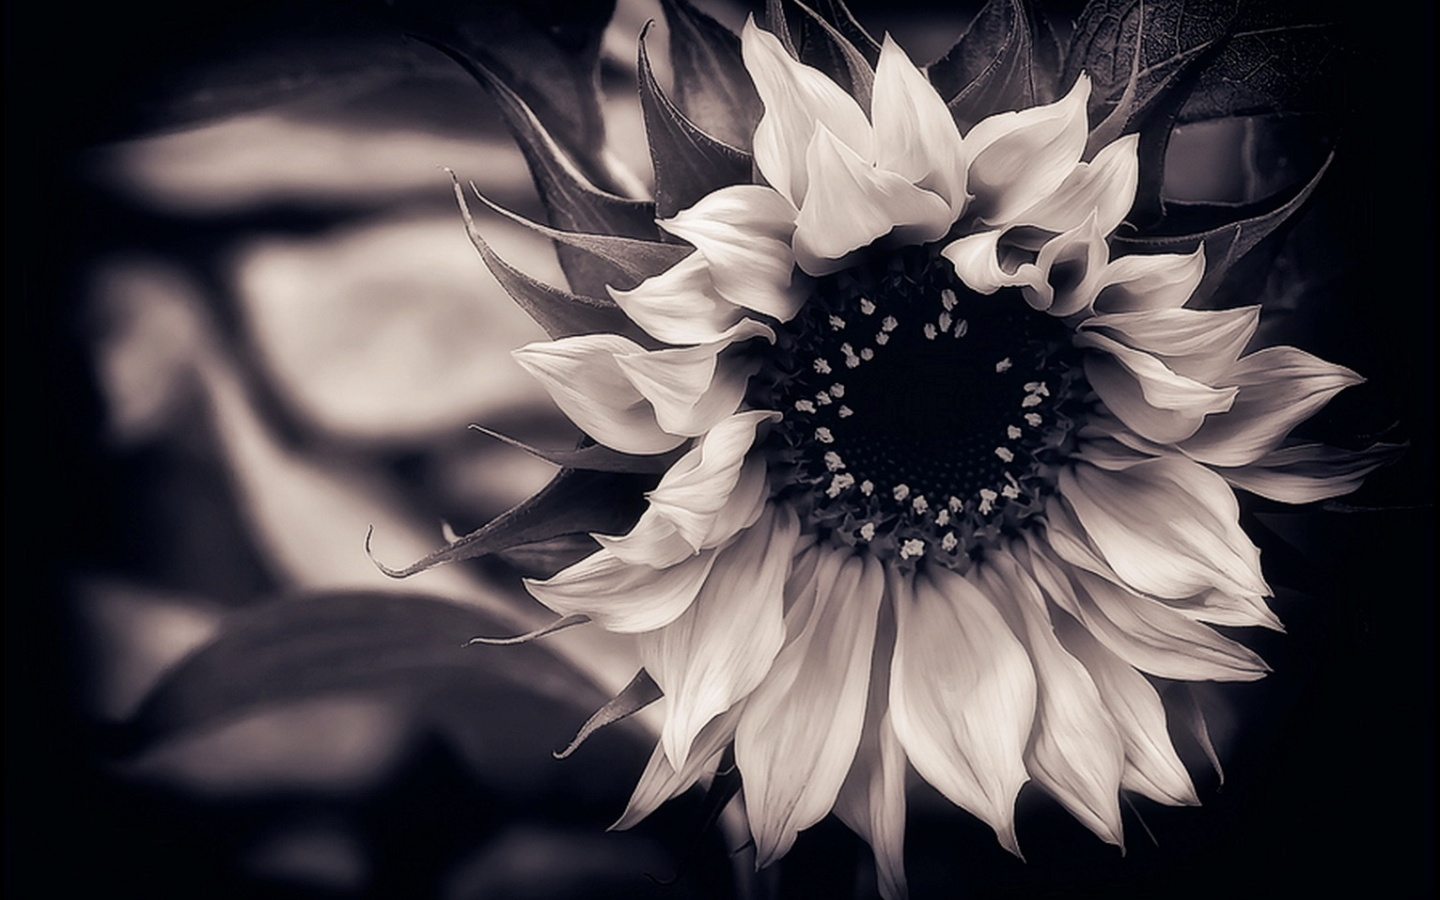 Flower On Black And White Flowers Background Hq Free Download